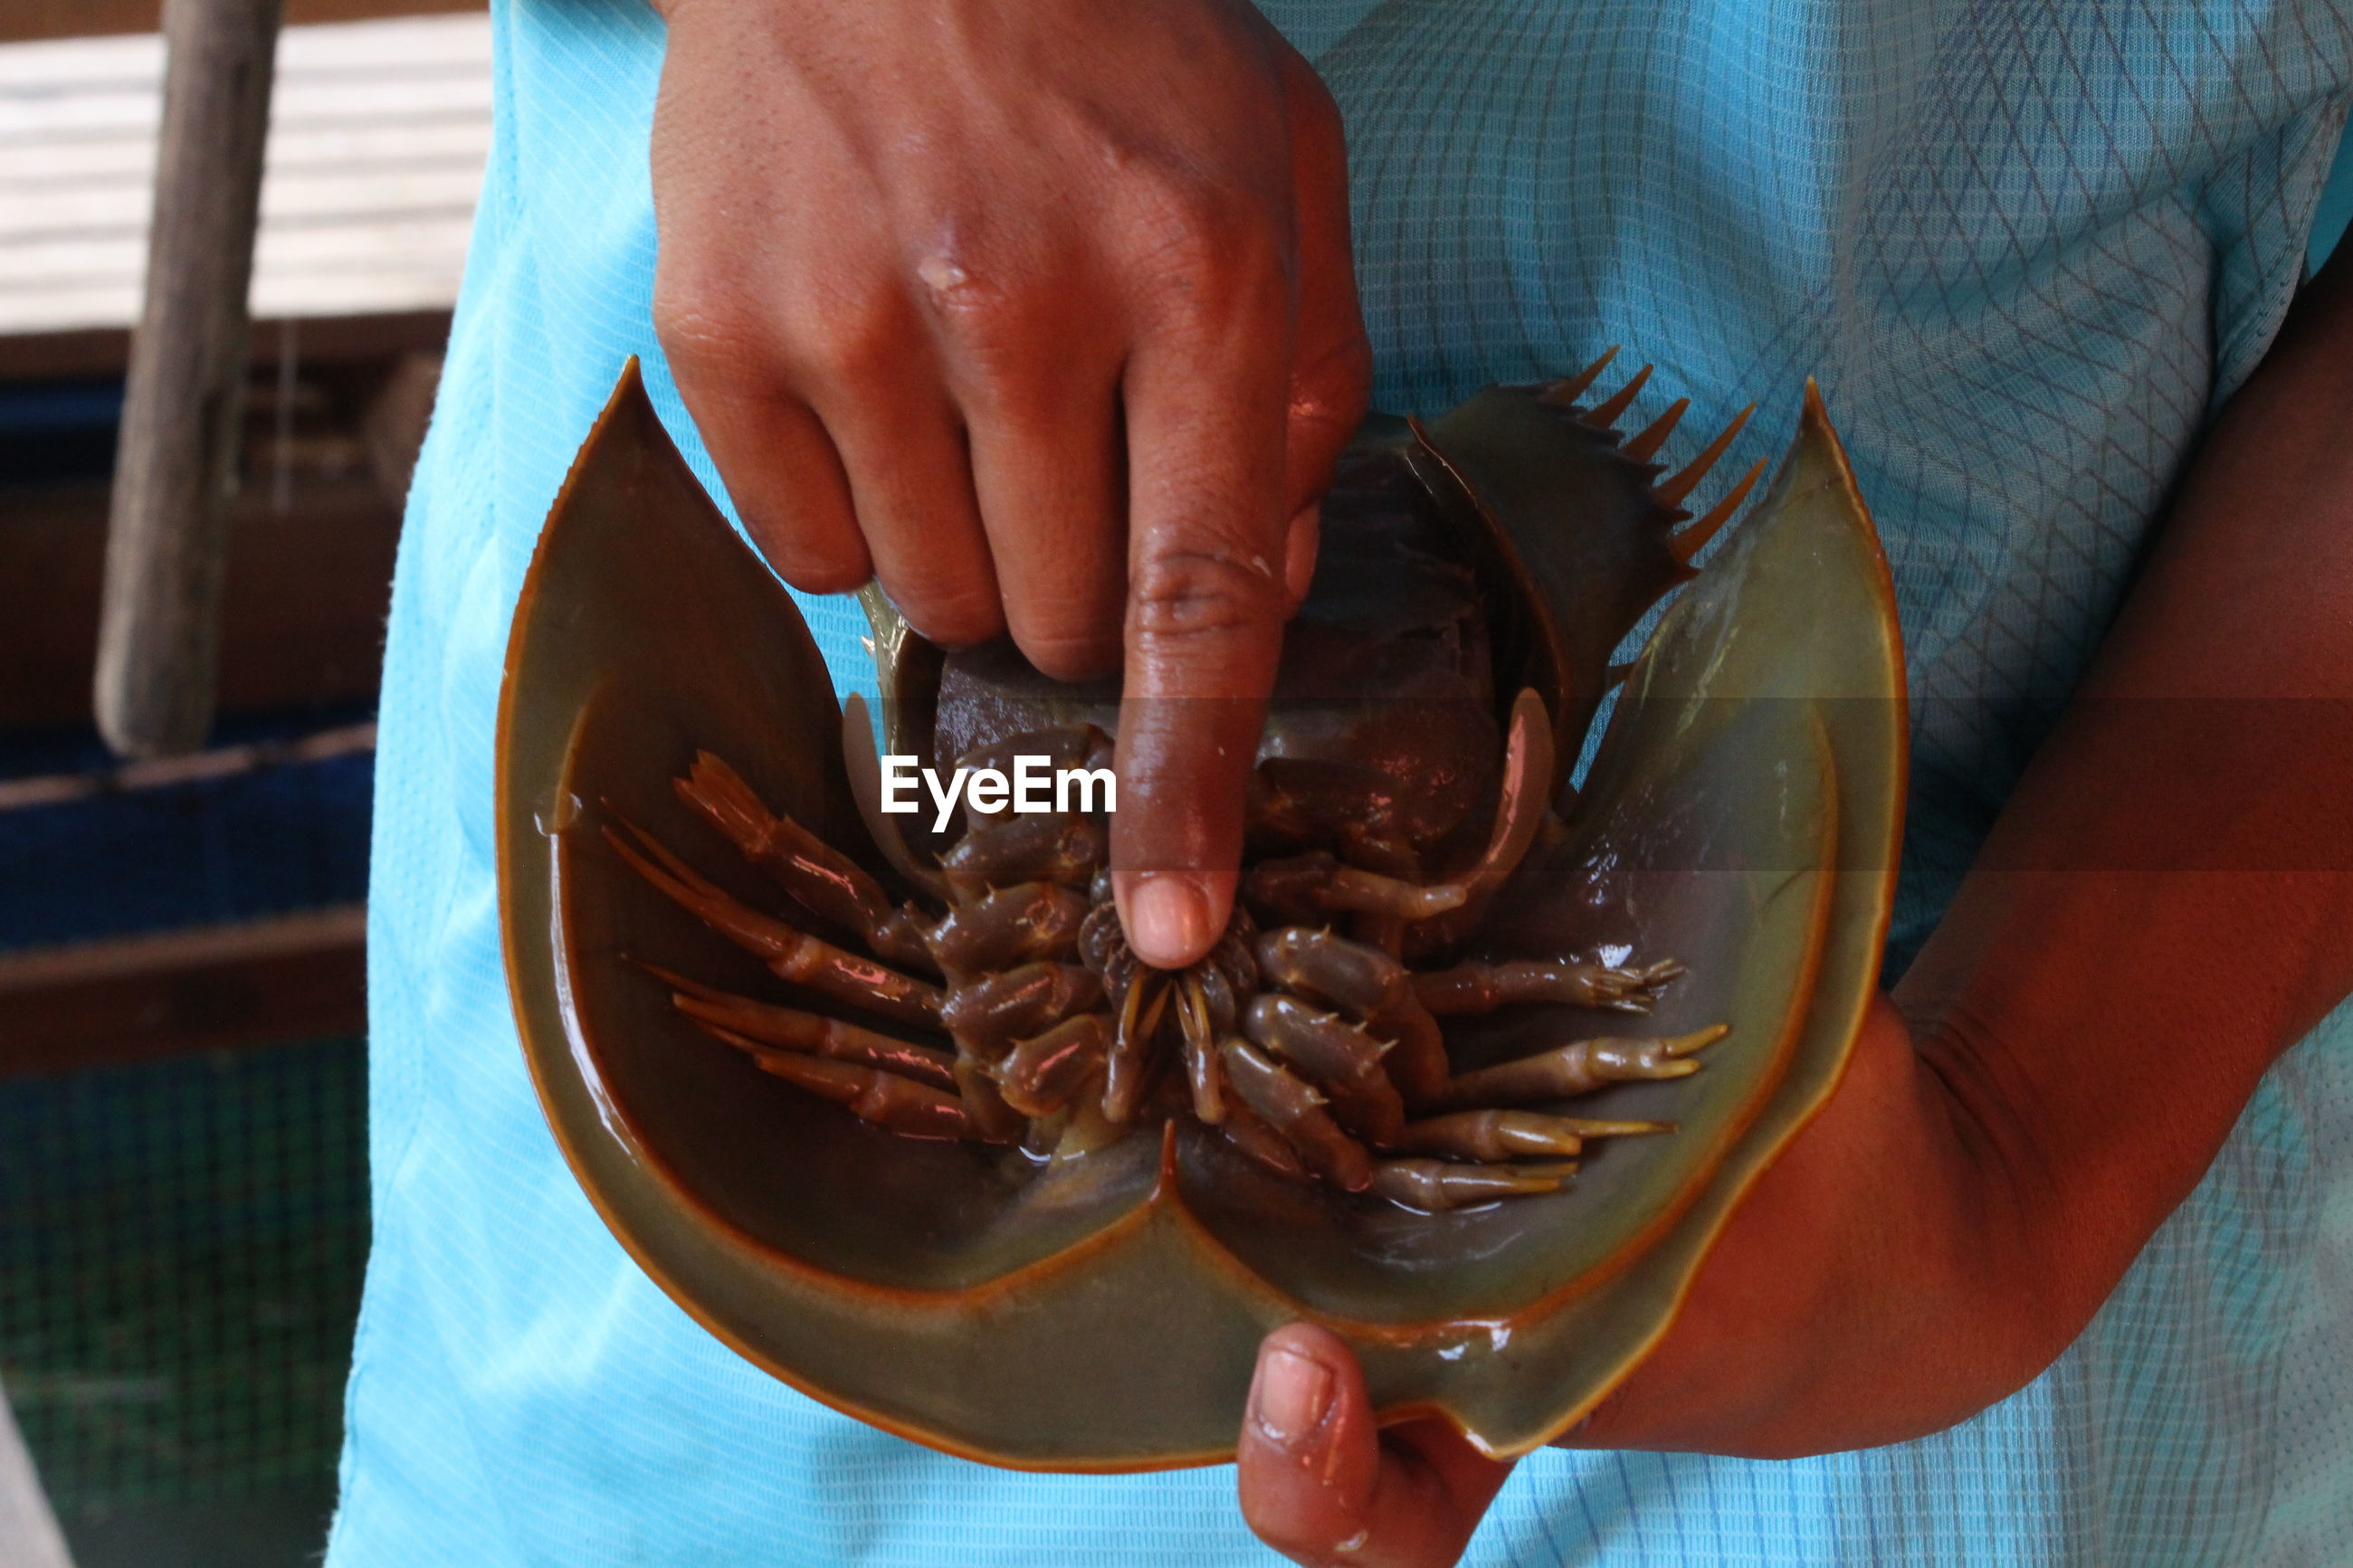 Midsection of man holding horseshoe crab